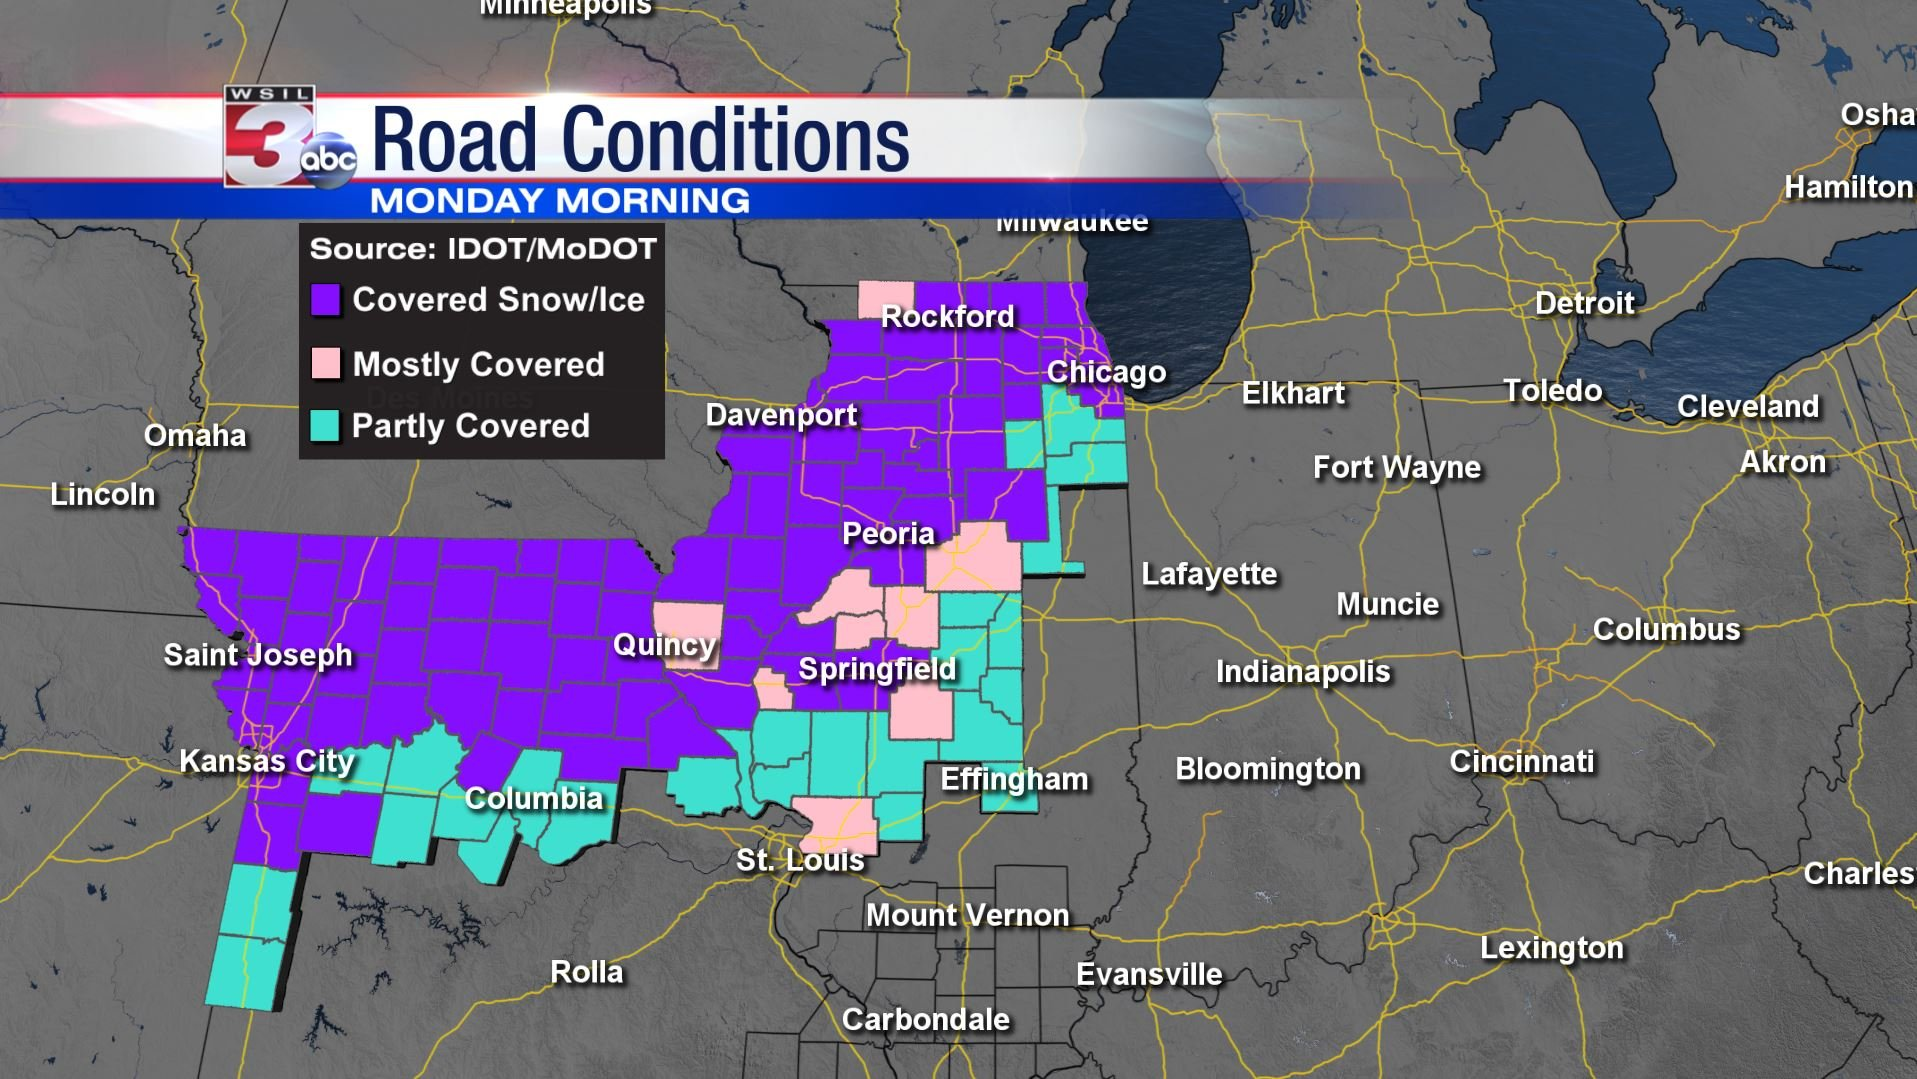 Illinois Road Conditions Map Latest Road Condition Maps: Illinois & Missouri   WSIL TV 3  Illinois Road Conditions Map